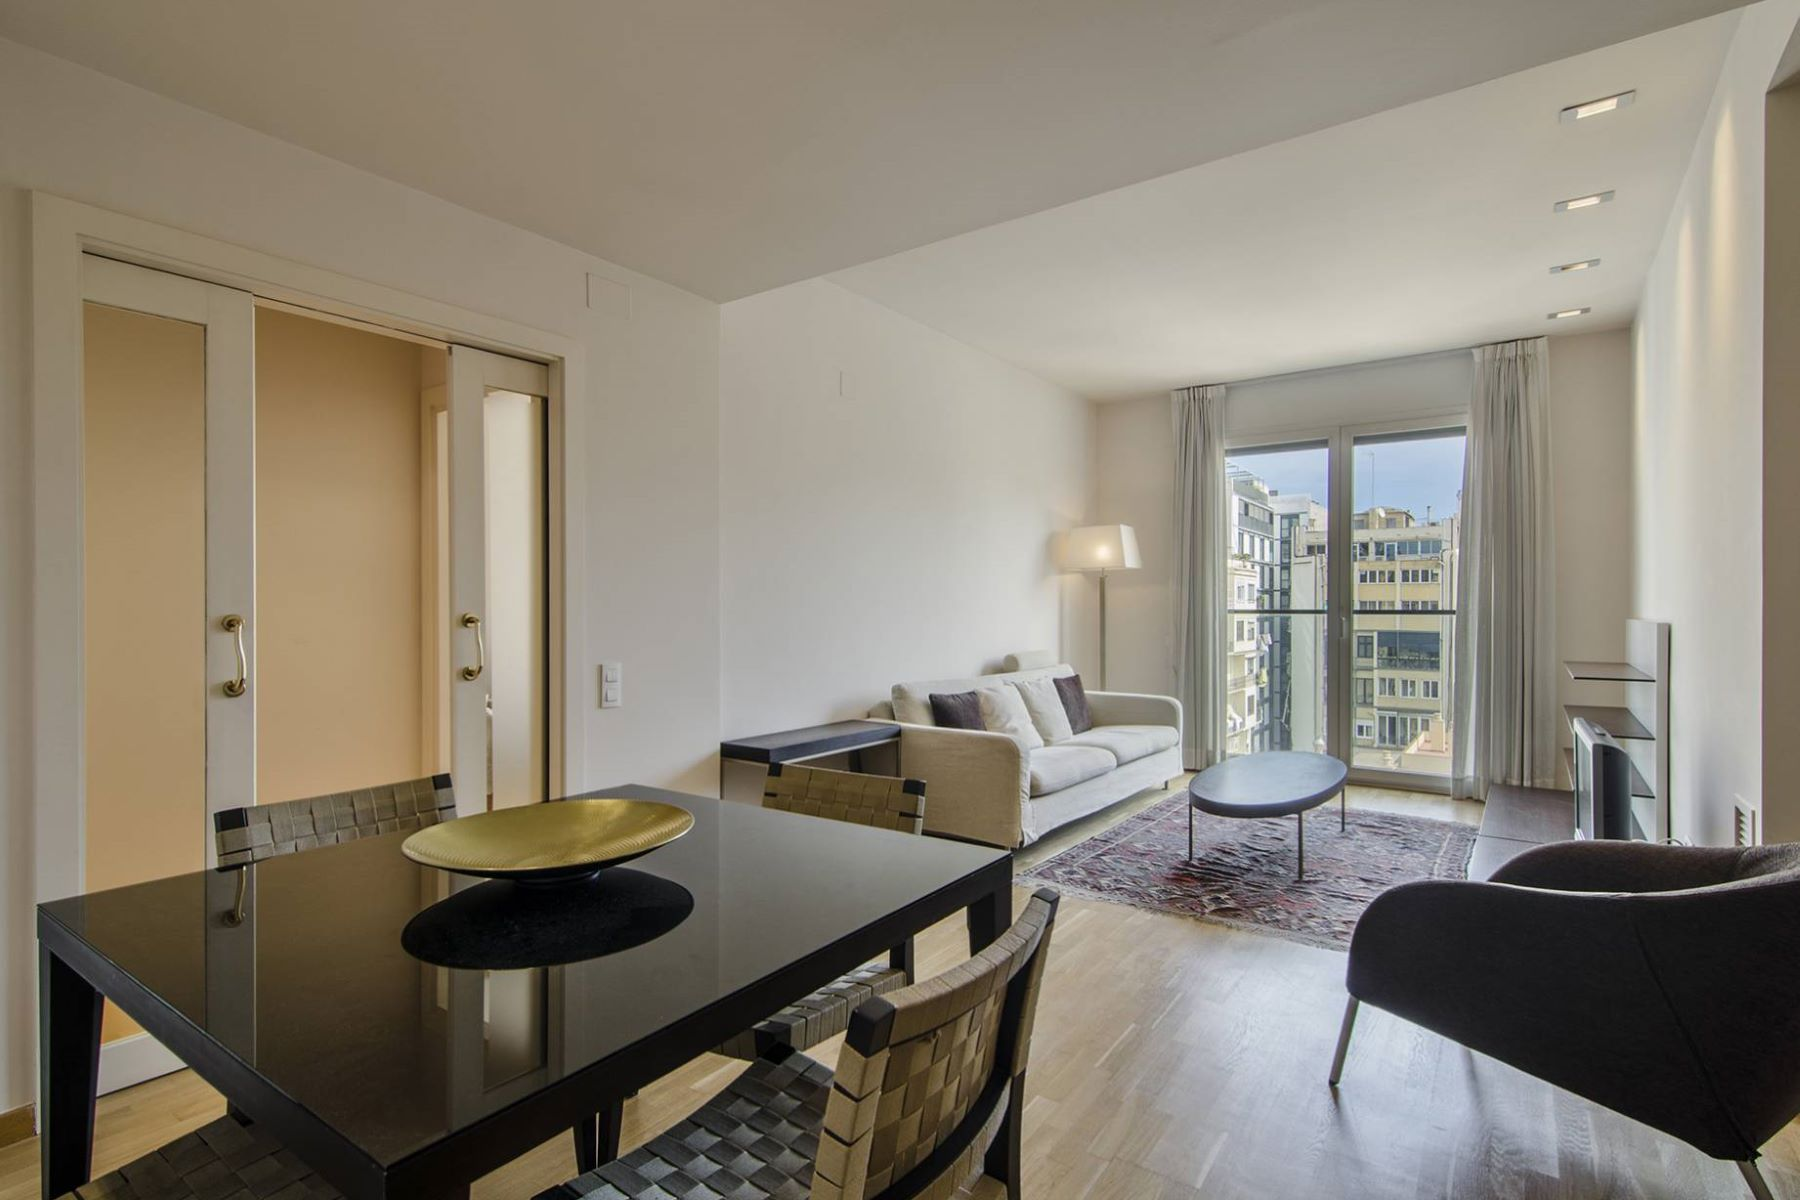 Căn hộ vì Bán tại Impeccable apartment in the heart of Barcelona Barcelona City, Barcelona, 08007 Tây Ban Nha